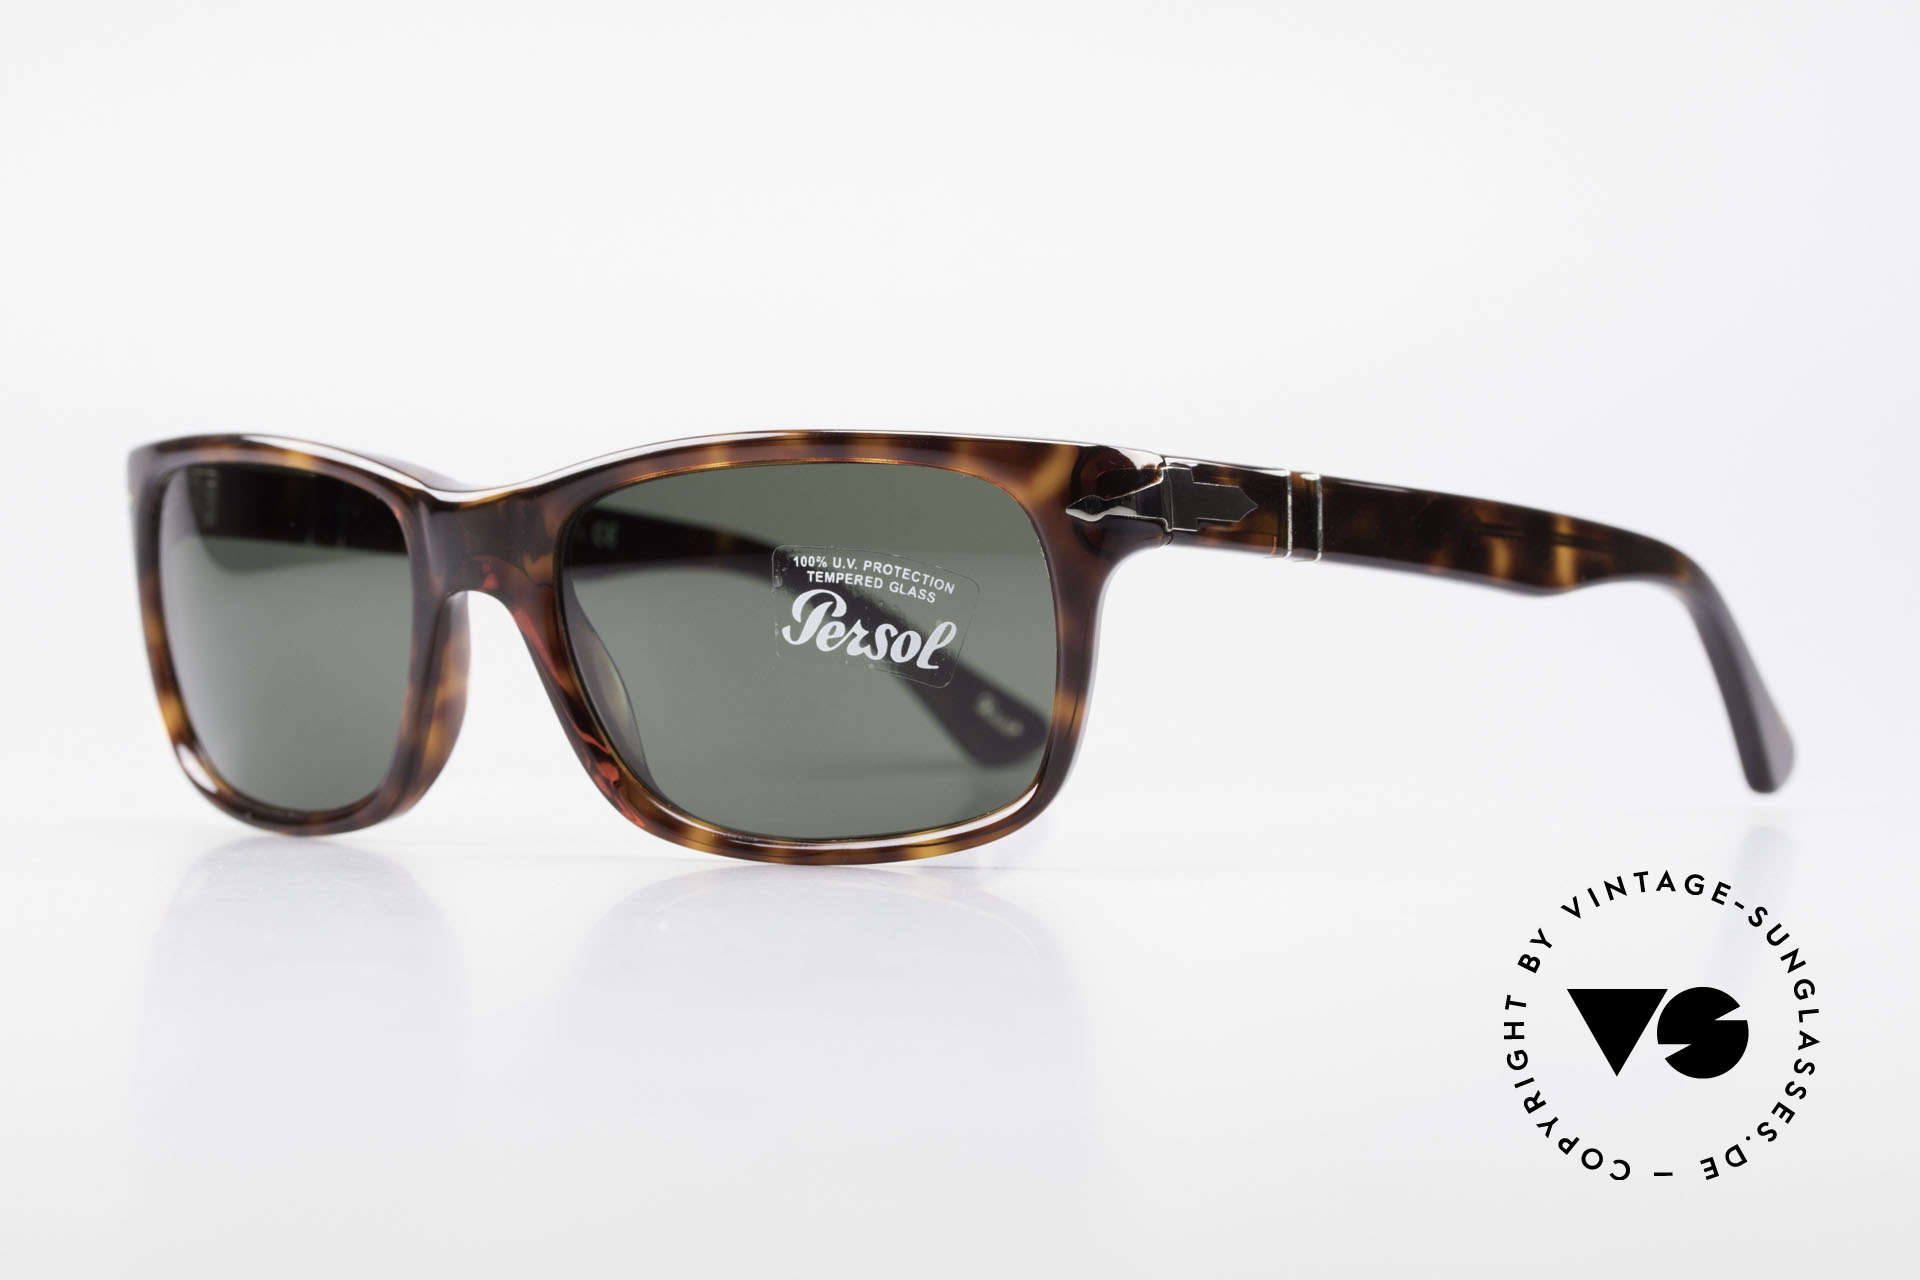 Persol 3048 Timeless Designer Sunglasses, Steve McQueen made Persol RATTI models world-famous, Made for Men and Women